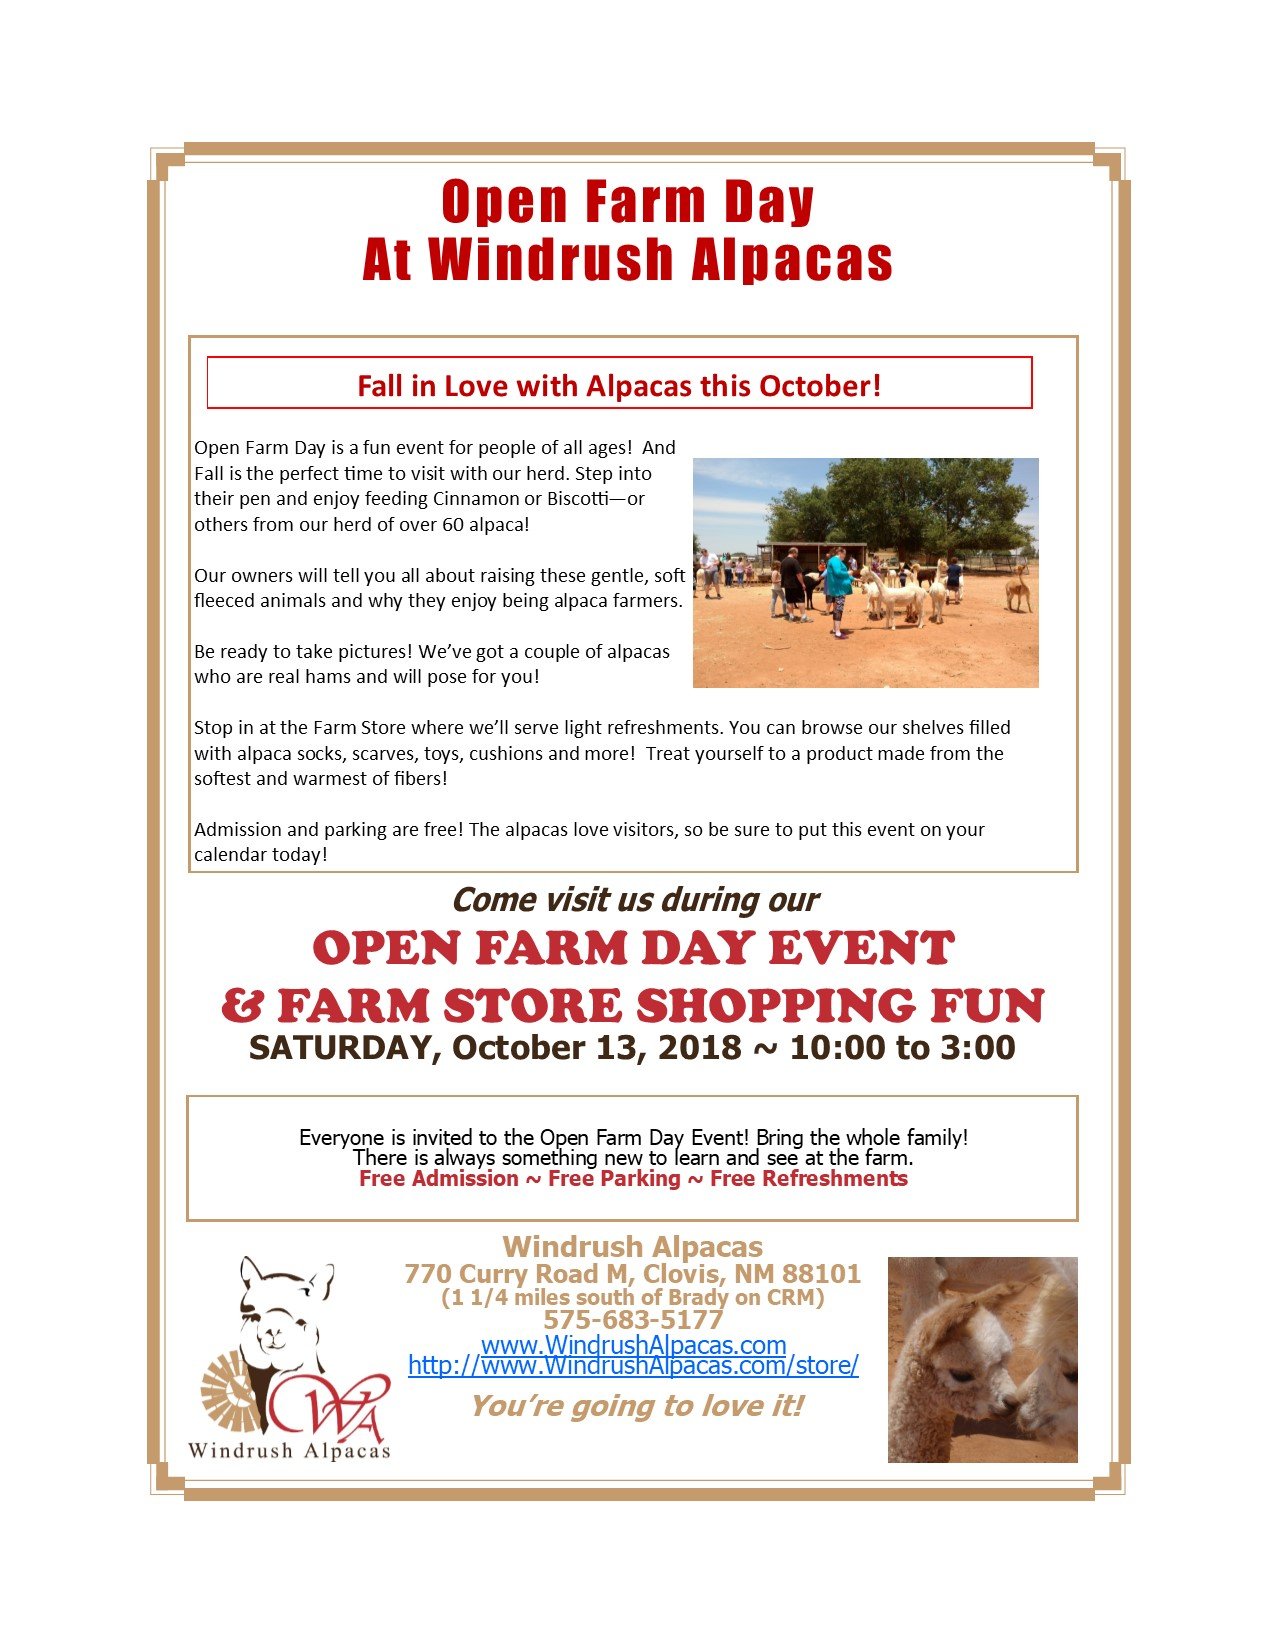 Open Farm Day at Windrush Alpacas